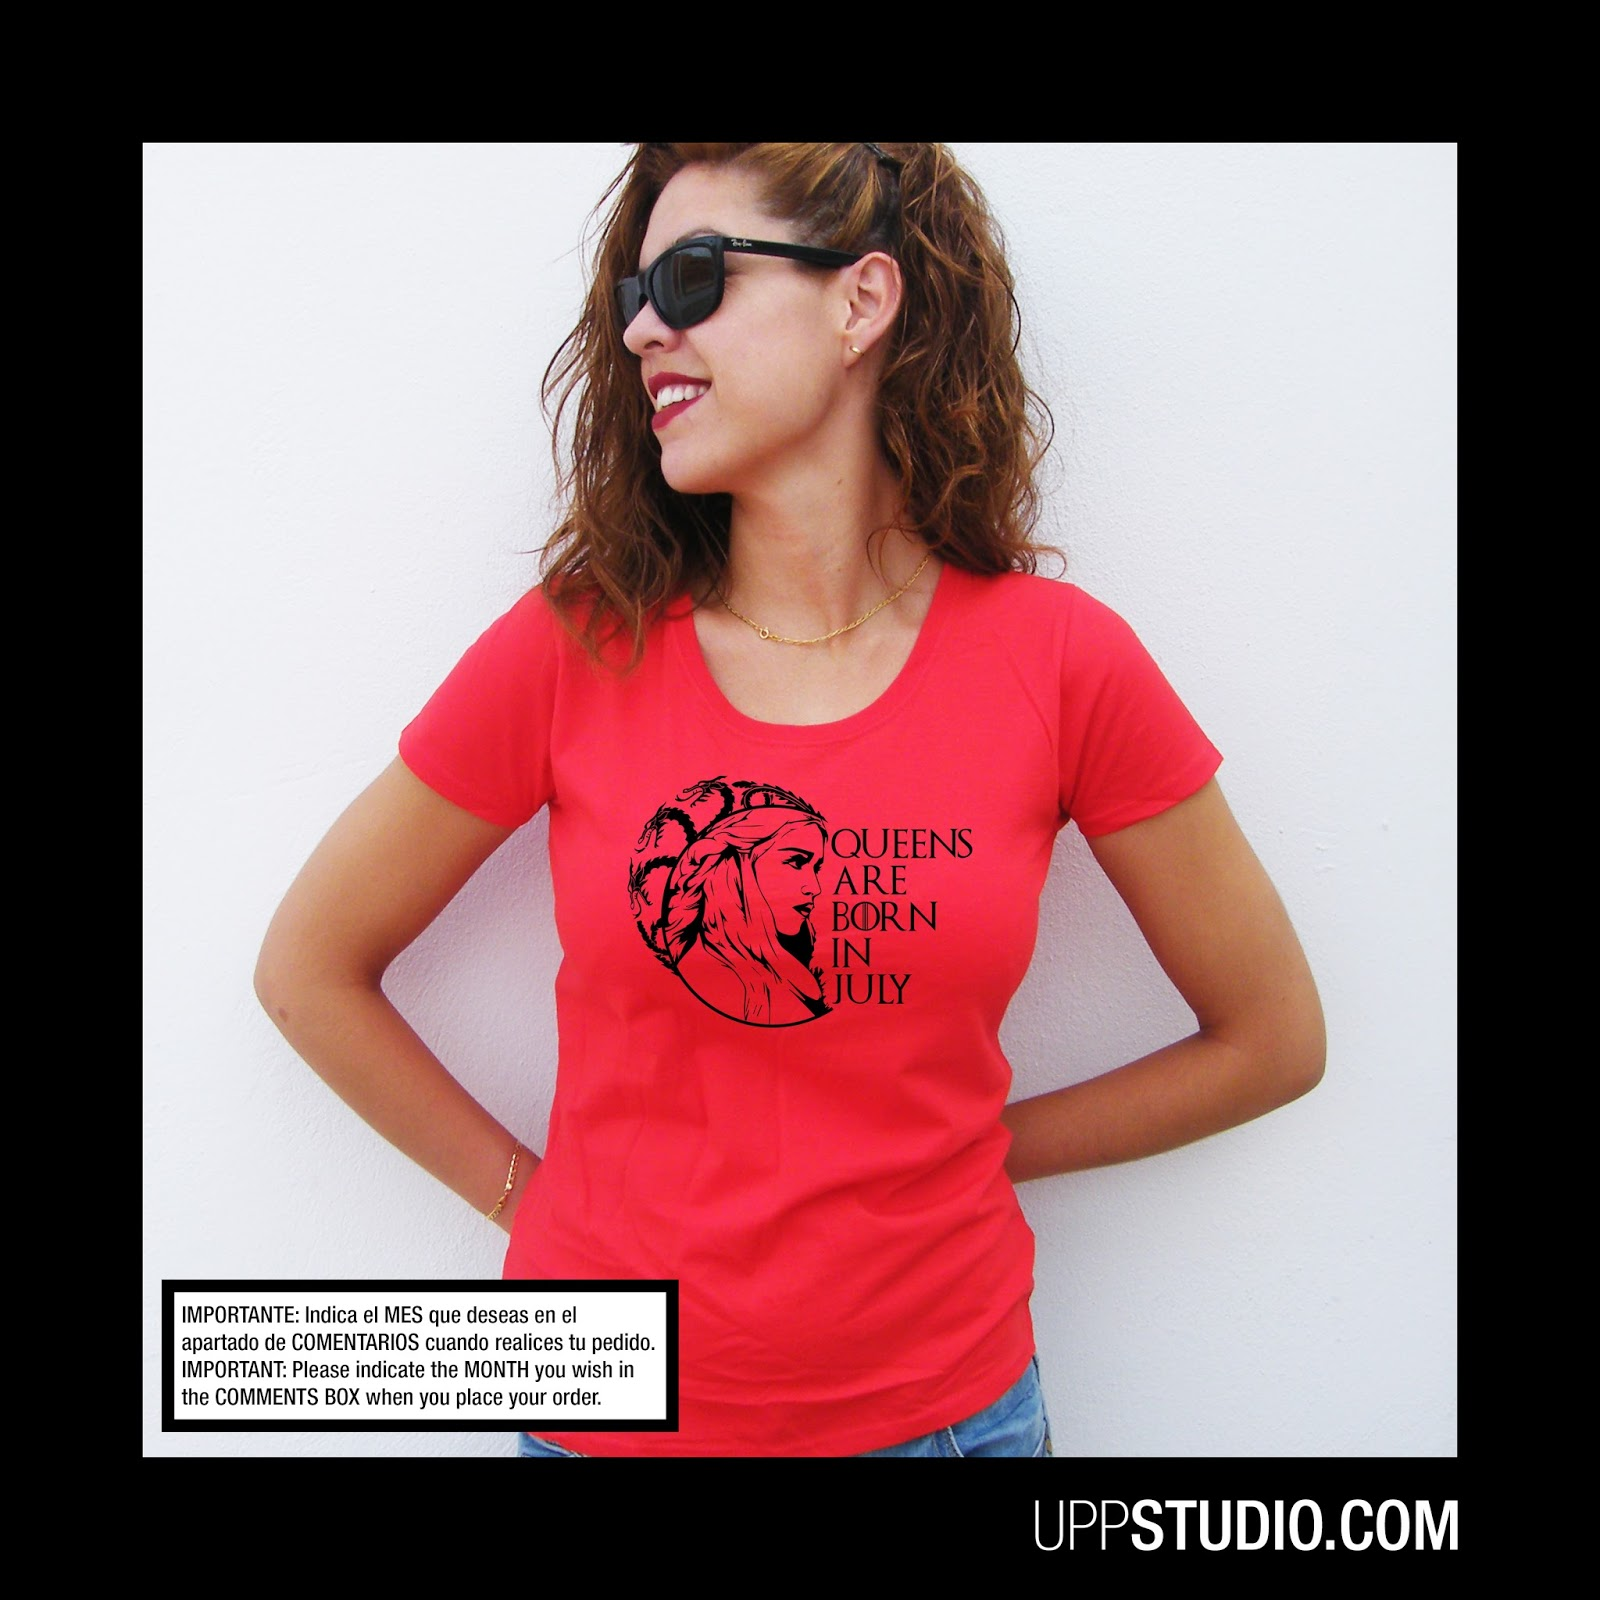 http://www.uppstudio.com/Camiseta-Queens-Are-Born-In-Personalizable?utm_source=SPEC&utm_medium=Blog&utm_campaign=GOTSPEC&utm_term=GOTSPEC